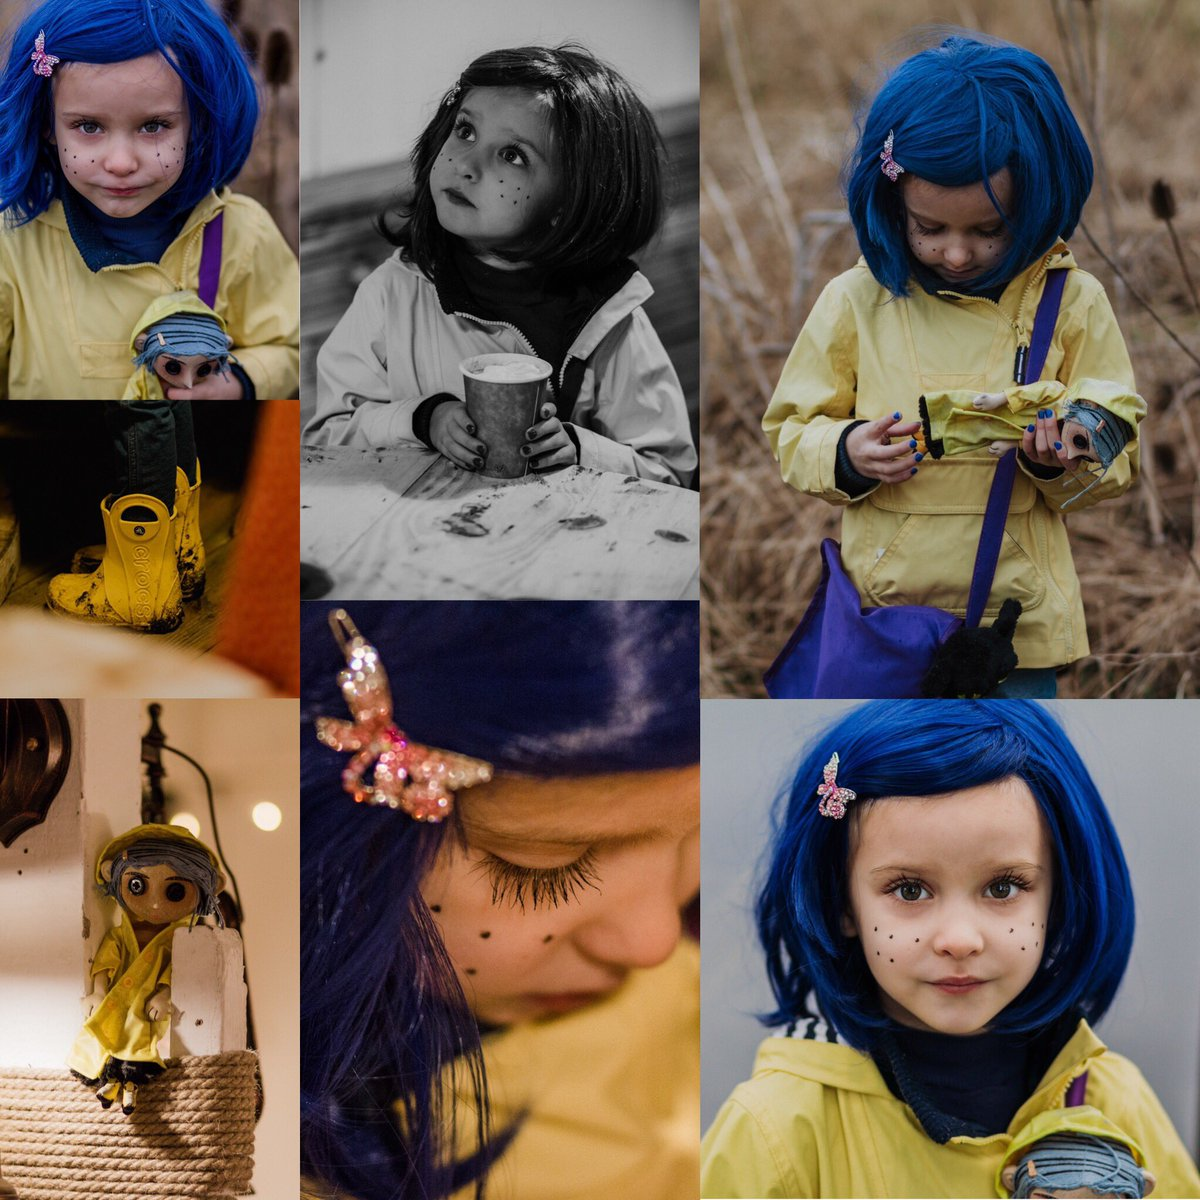 Kate On Twitter Here S More Photos Of Calis Halloween Costume As Coraline Neilhimself Laikastudios Safe To Say The Local Residents Loved Stopping To Talk To Miss Jones That Day In The Park